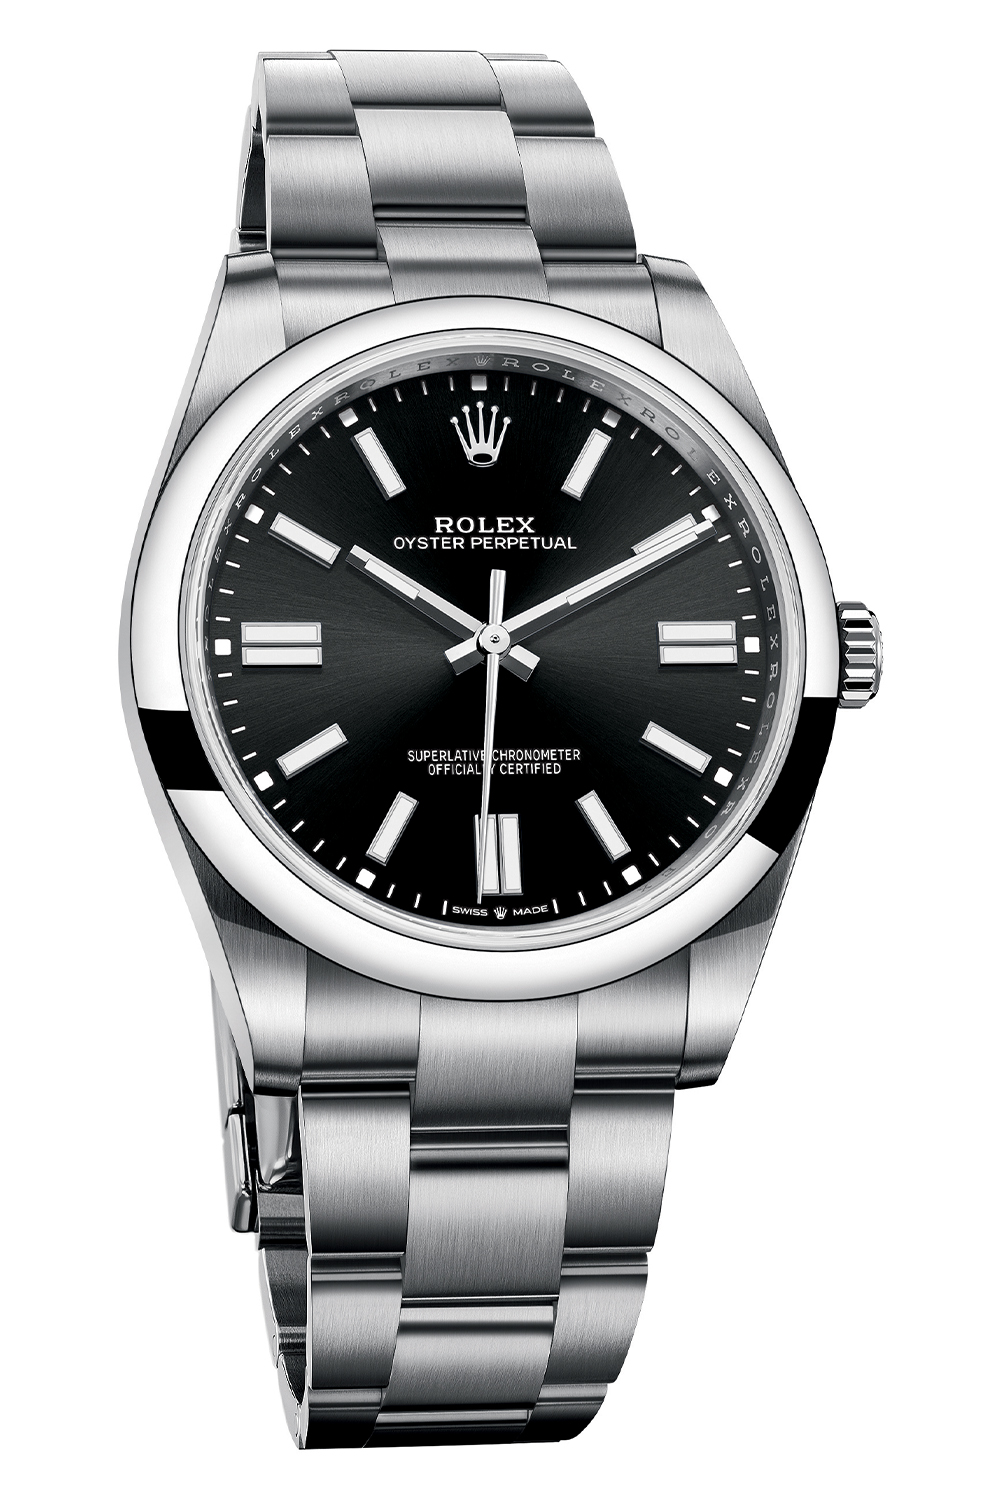 2020 Rolex Oyster Perpetual 41 reference 124300 - 7